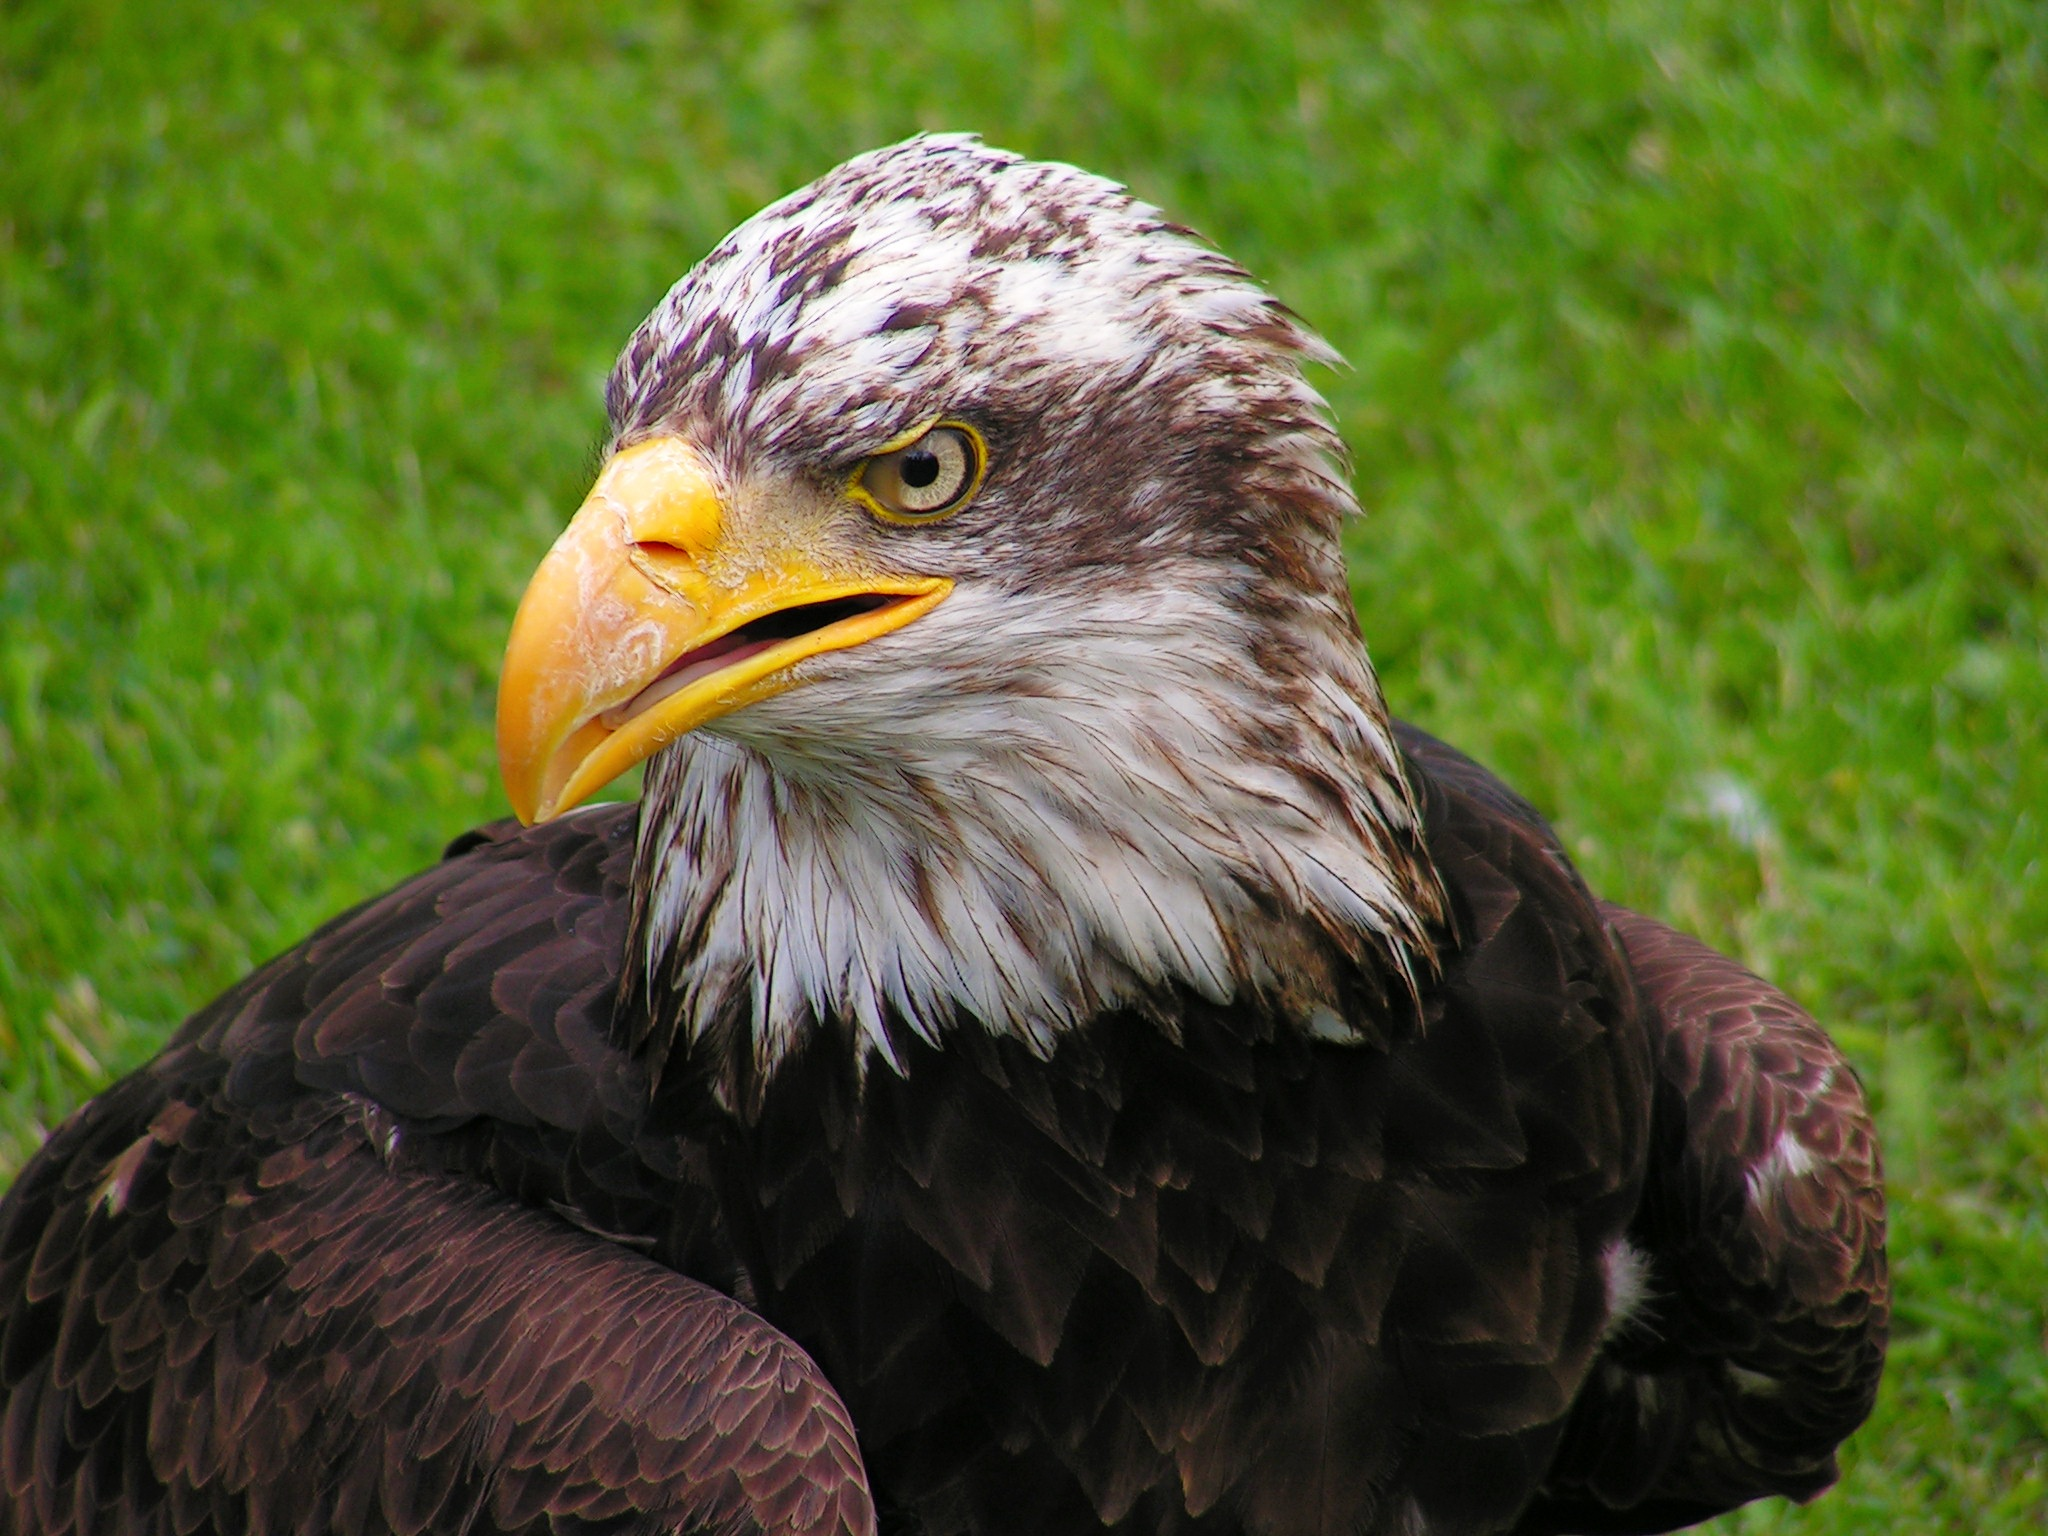 68263 download wallpaper Animals, Bald Eagle, White-Headed Eagle, Eagle, Bird, Predator screensavers and pictures for free